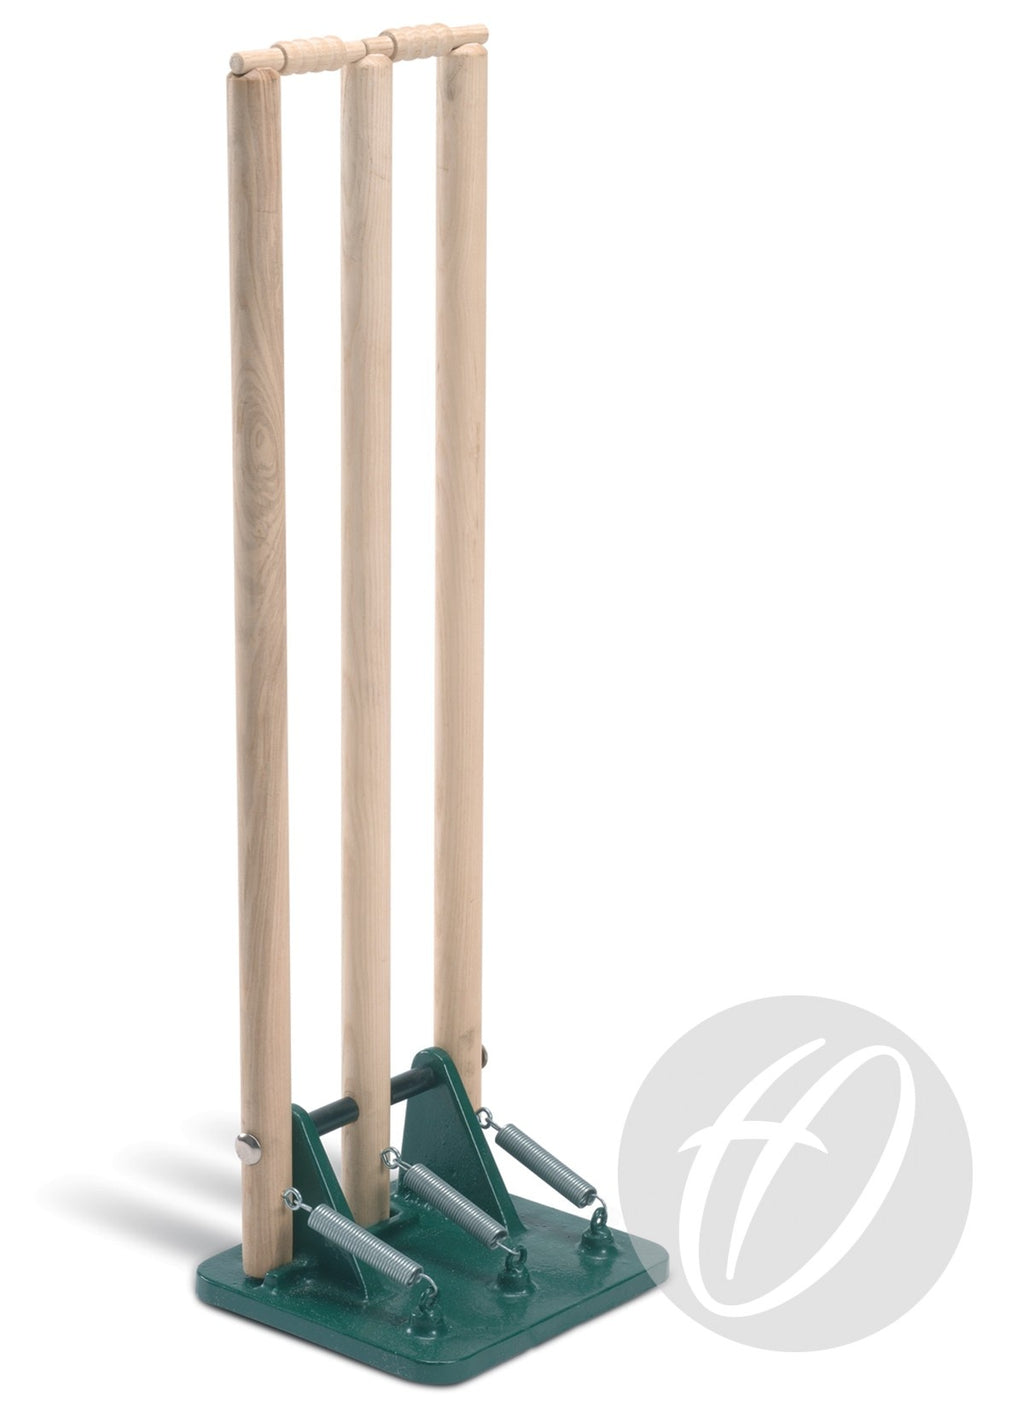 Spare CP1 Cricket stumps